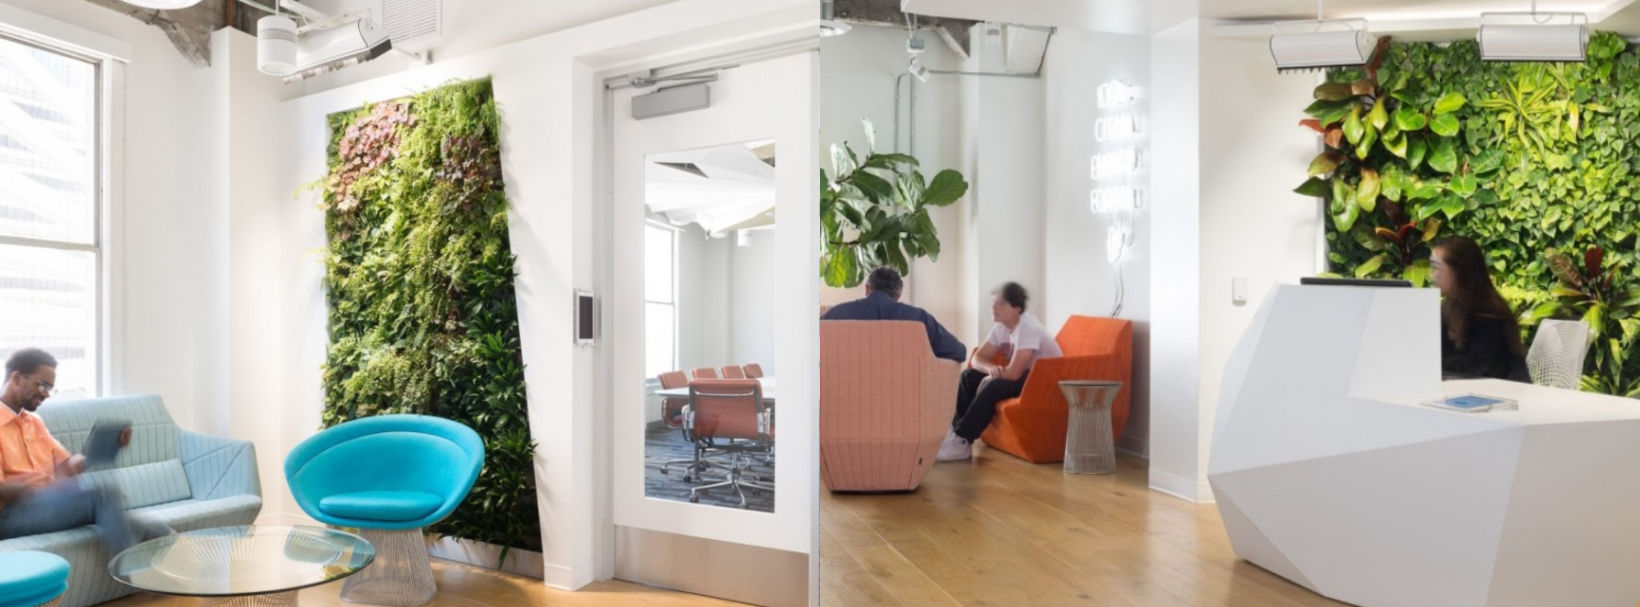 How To Incorporate Biophilic Design In Your Office 5 Simple Steps